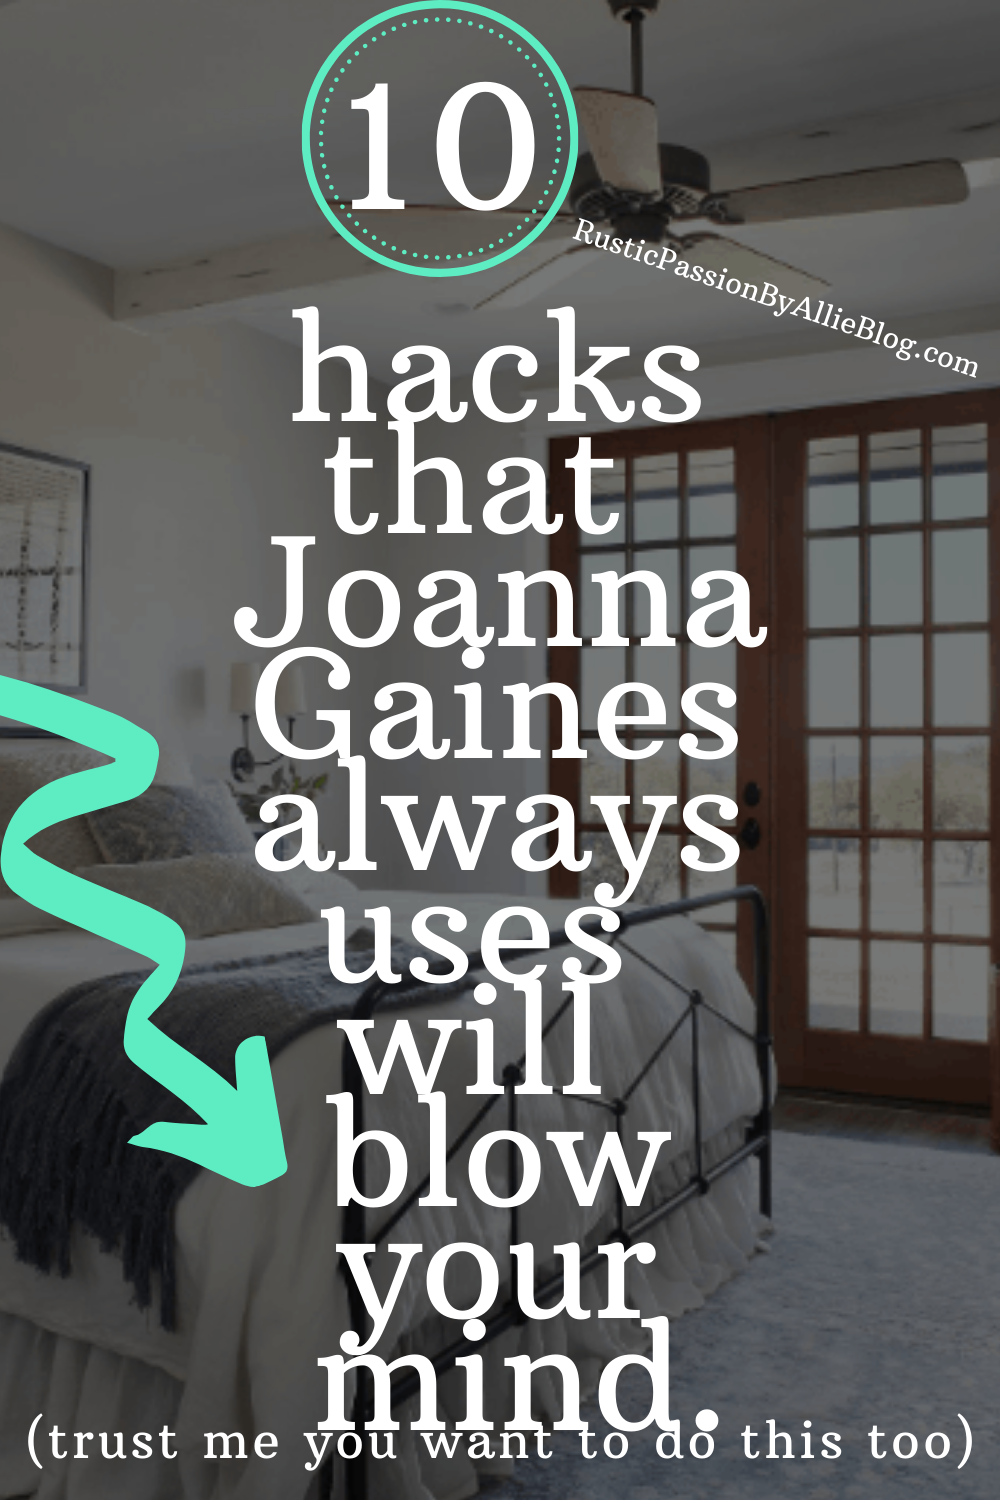 10 decorating hacks from Joanna Gaines